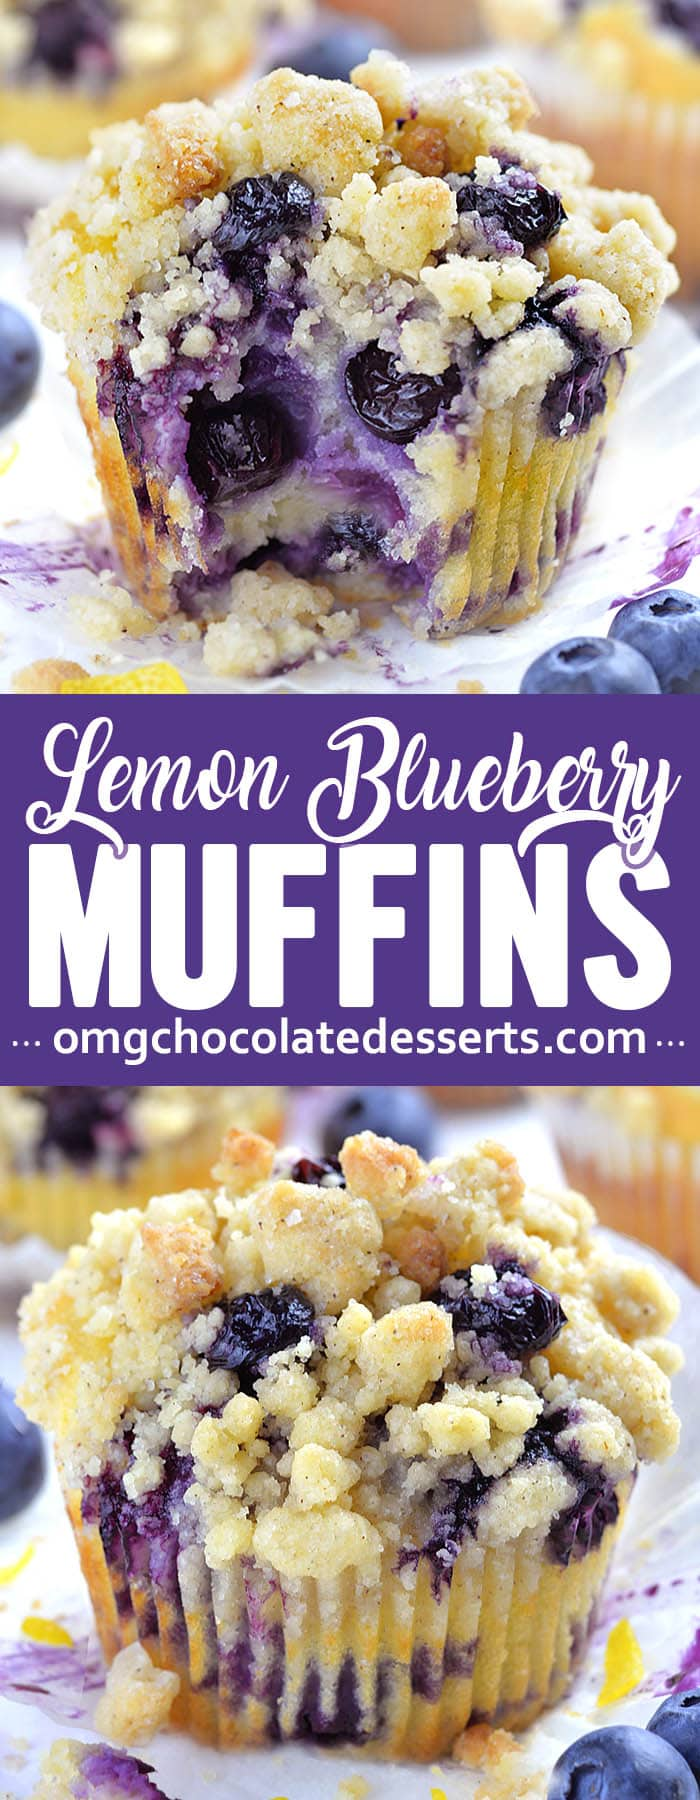 Blueberry Lemon Muffins are a delicious breakfast choice on a spring or summer day. The bright tang of lemon zest and juice mingled with sweet blueberries makes these muffins worth waking up for.